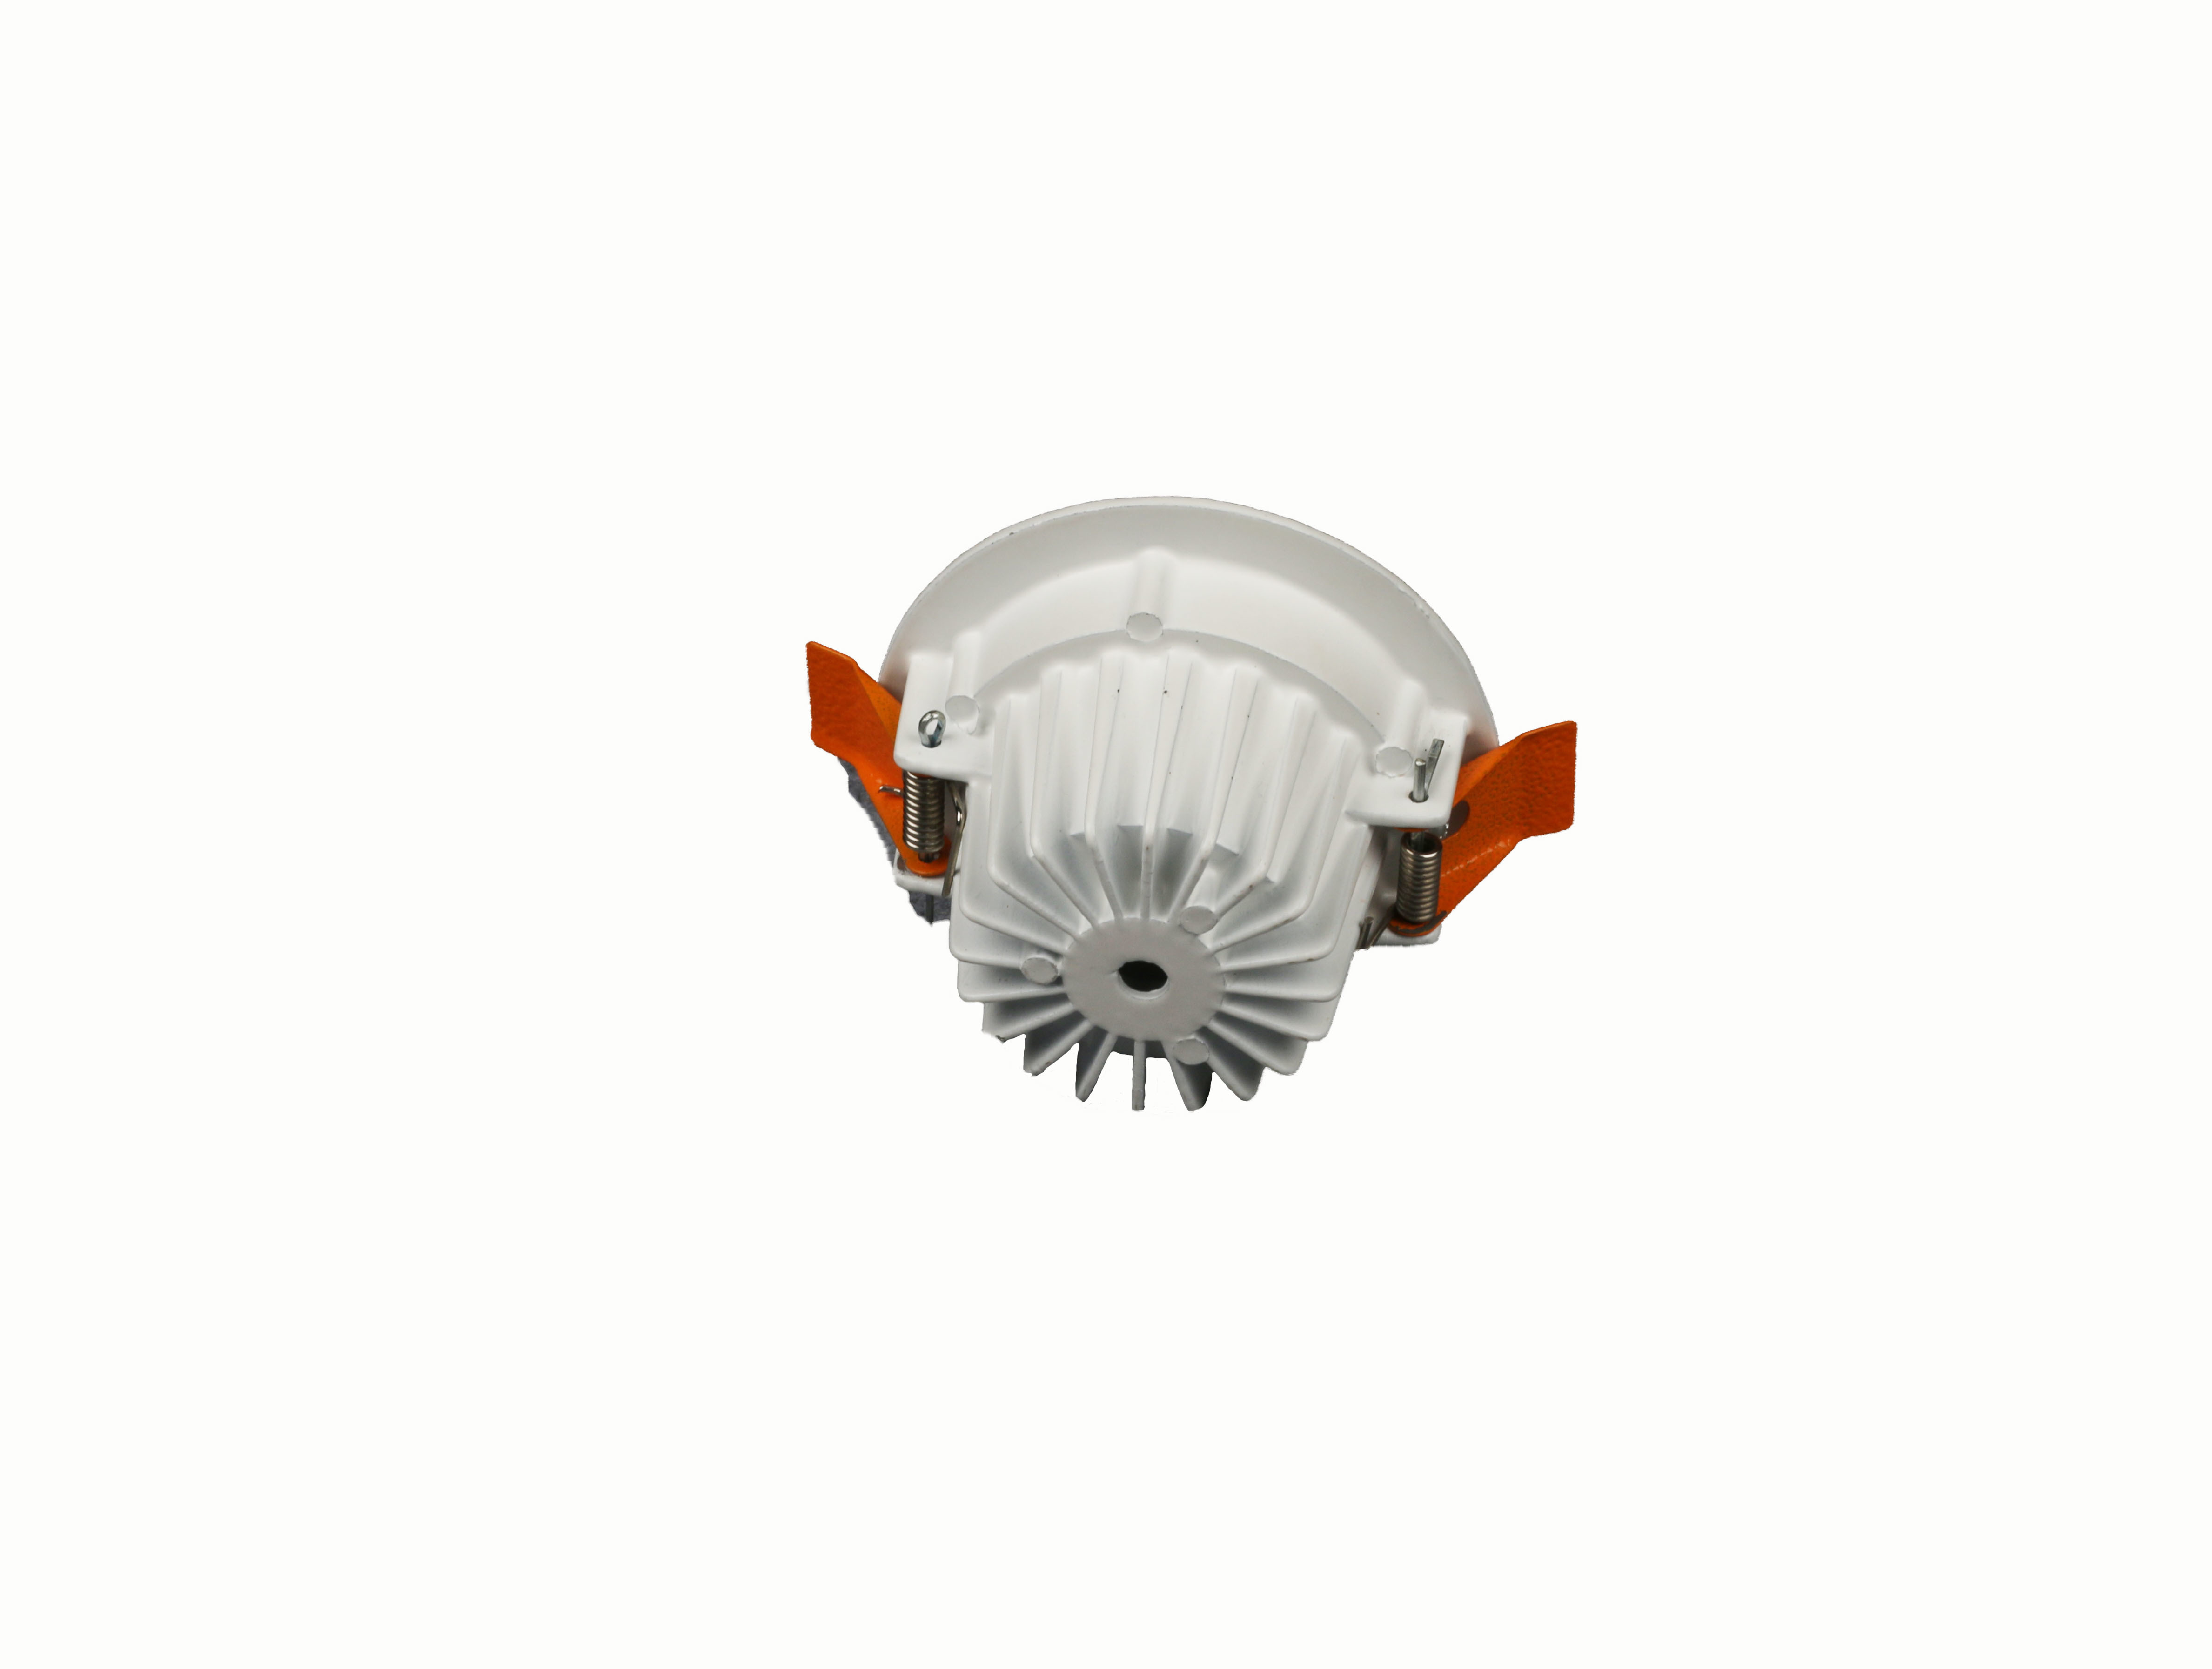 7 W ECO + DOWN LIGHT